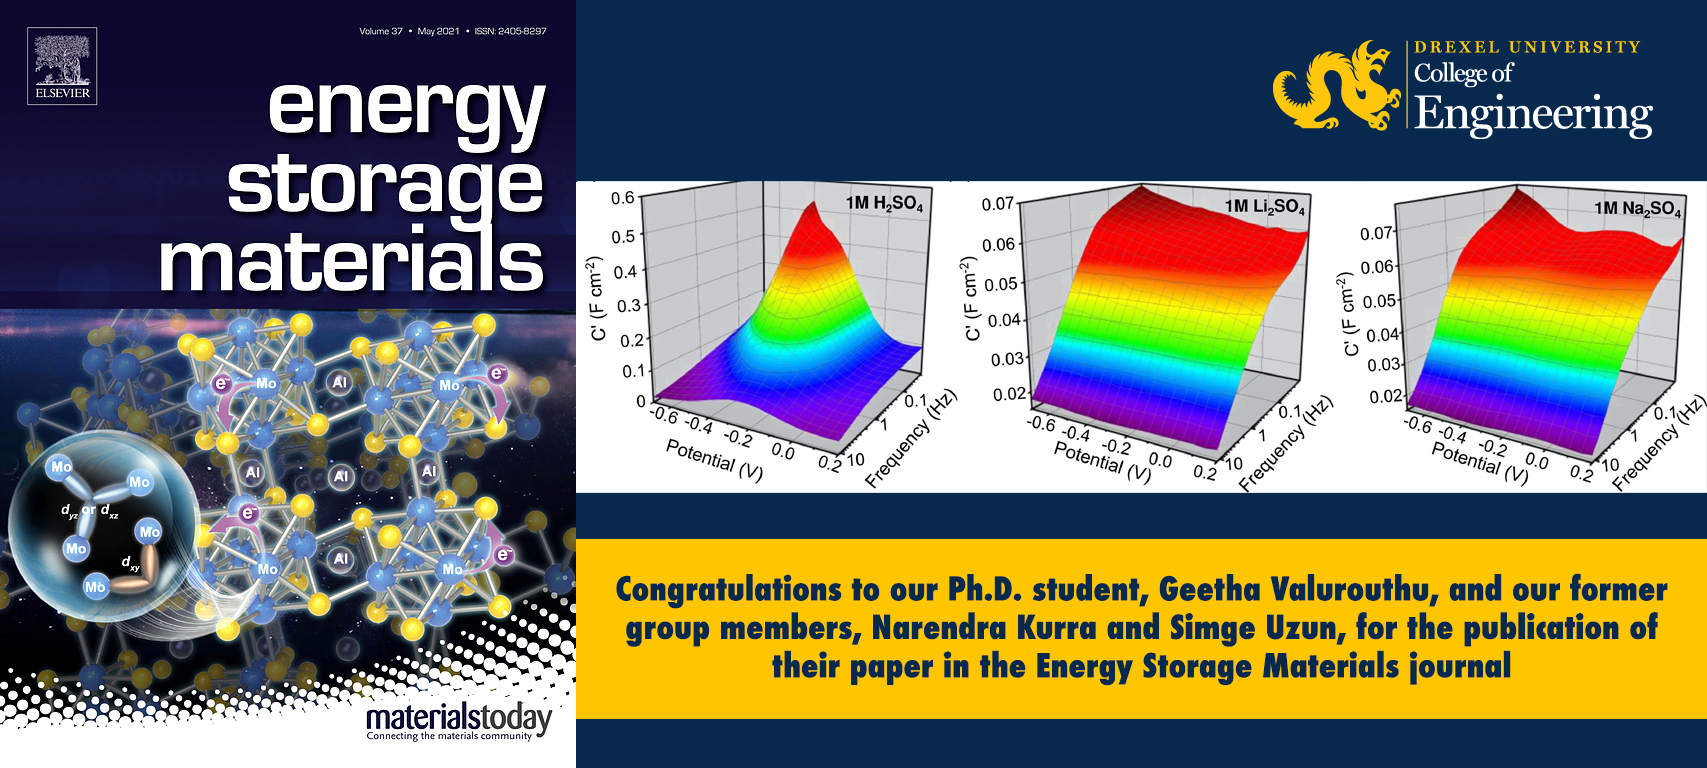 Congratulations to Our Ph.D. student, Geetha Valurouthu, and Our Former Group Members, Narendra Kurra and Simge Uzun, for the Publication of Their Paper in the Energy Storage Materials Journal